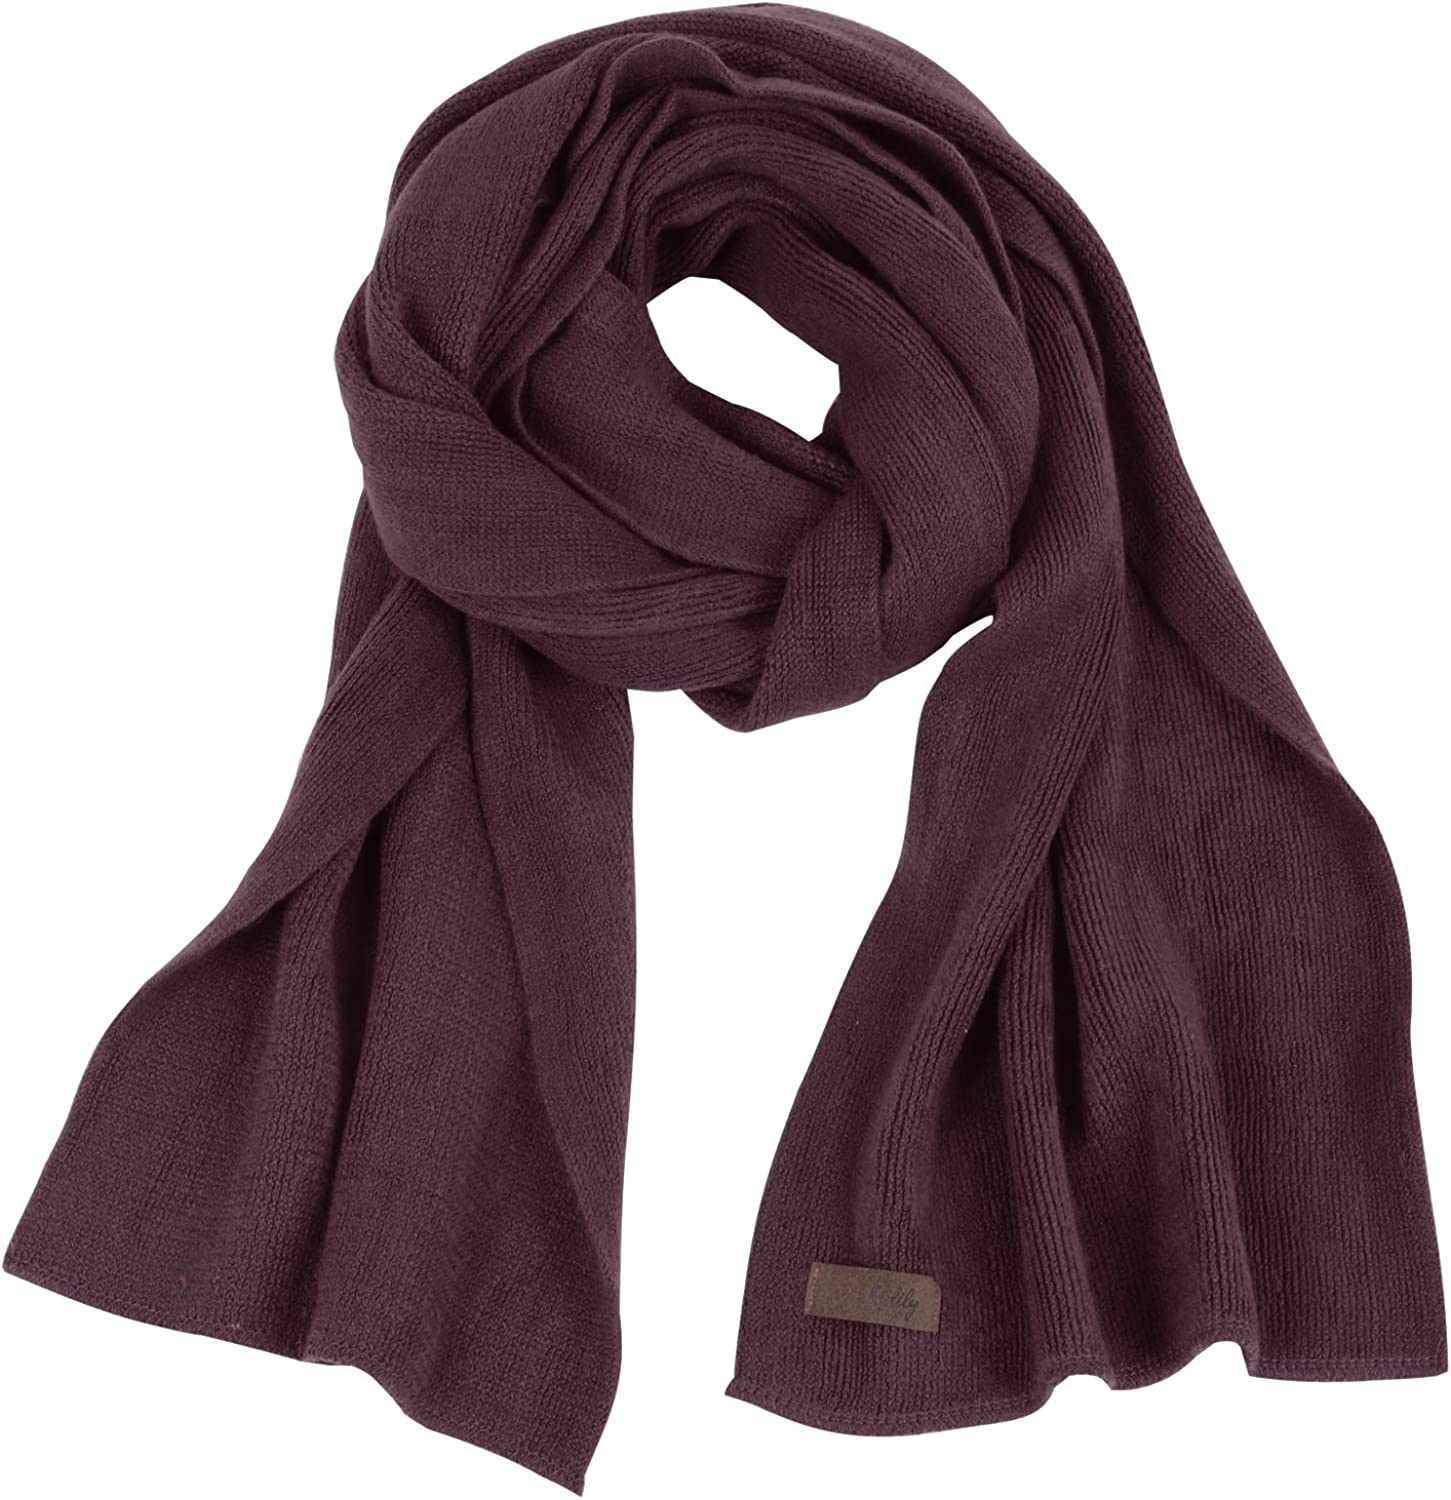 ililily Solid Color Neck Warmer Wide Lightweight Long Scarf